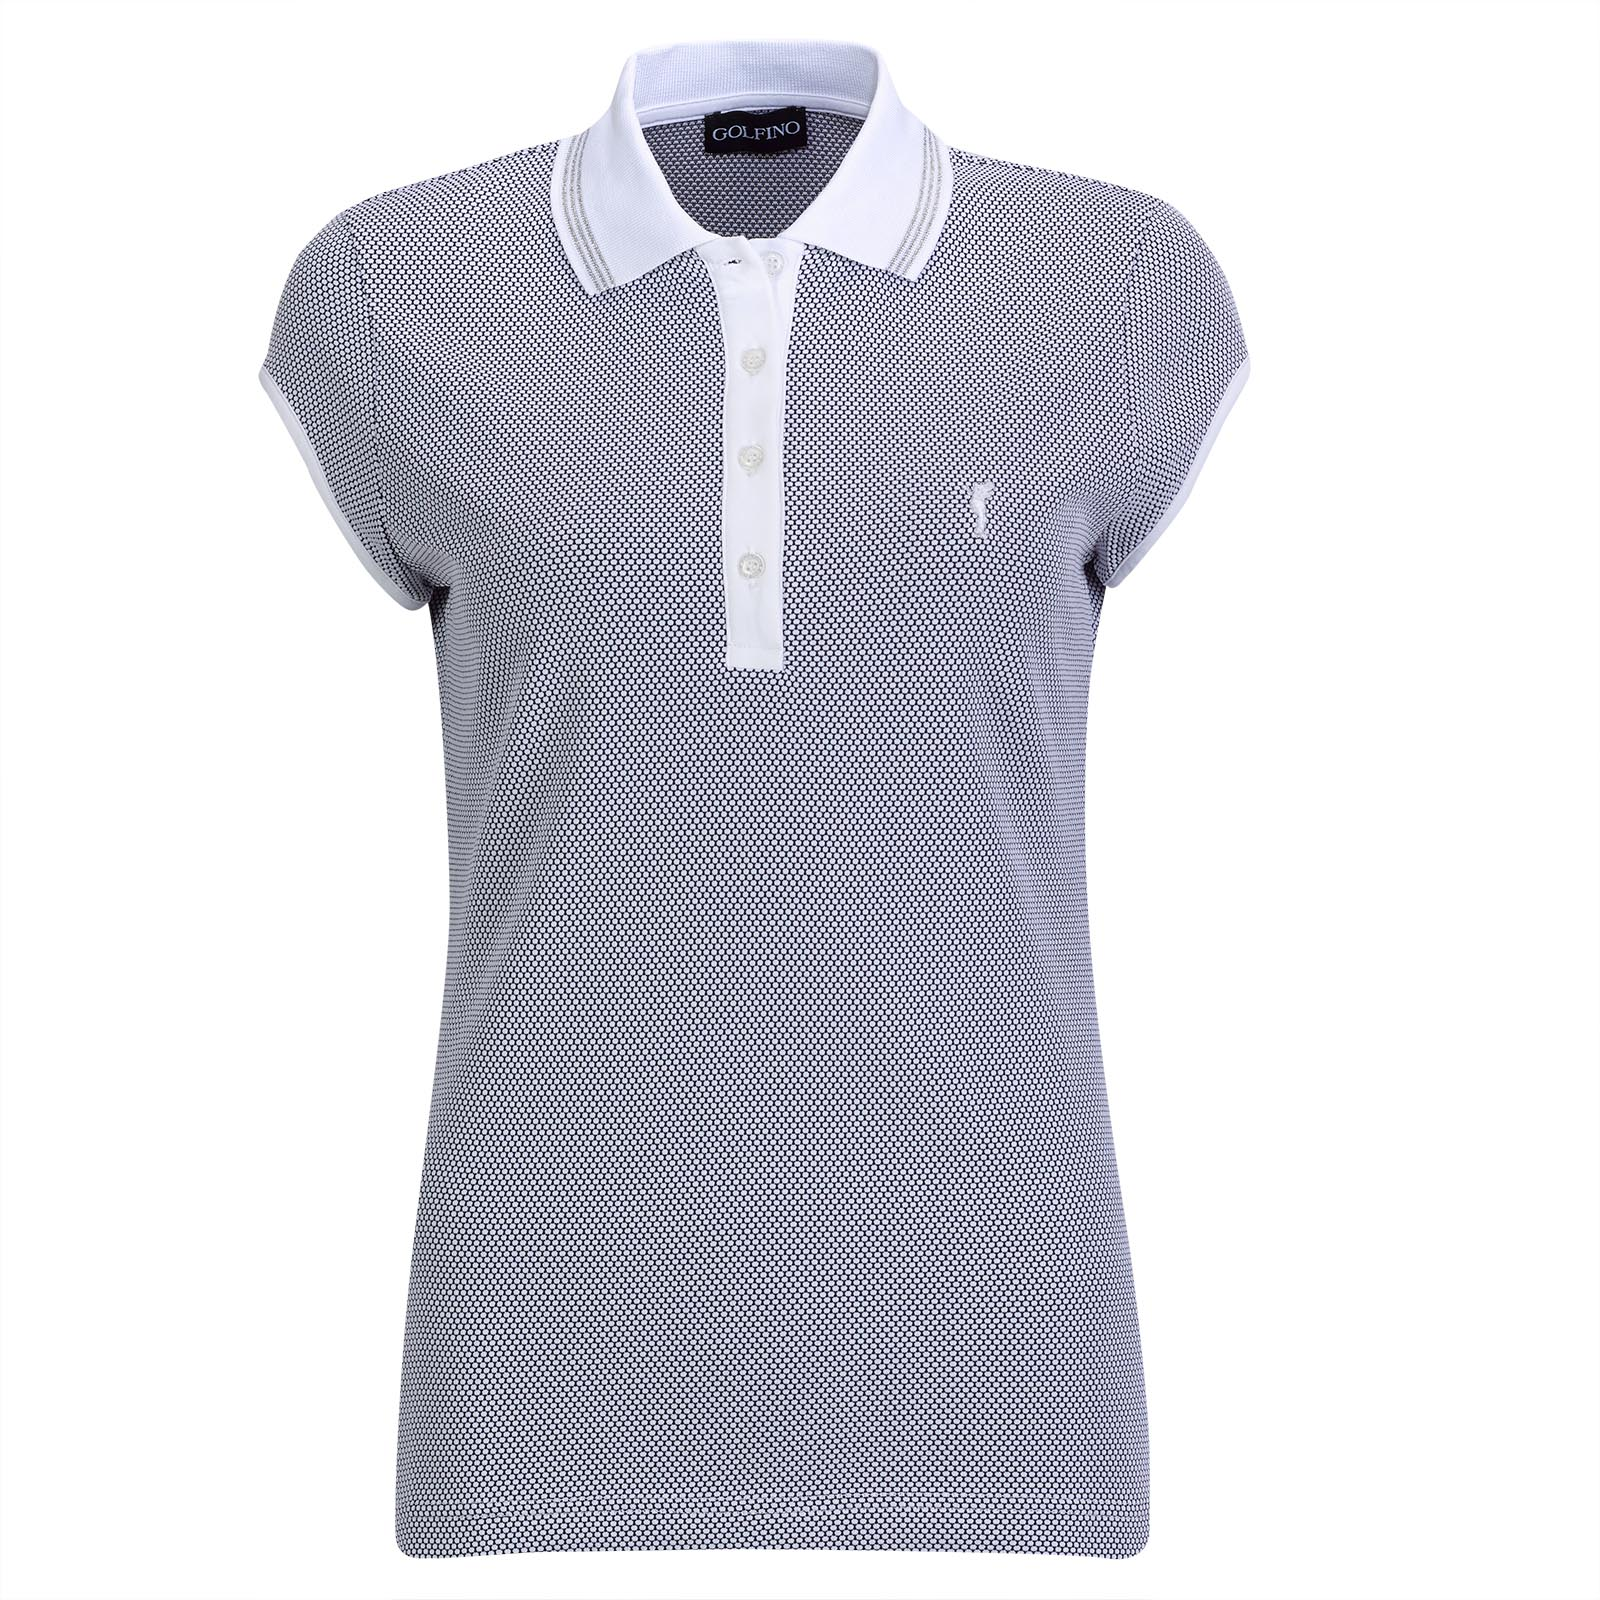 Ladies' golf polo shirt with cap sleeves, made from high quality bubble Jacquard fabric